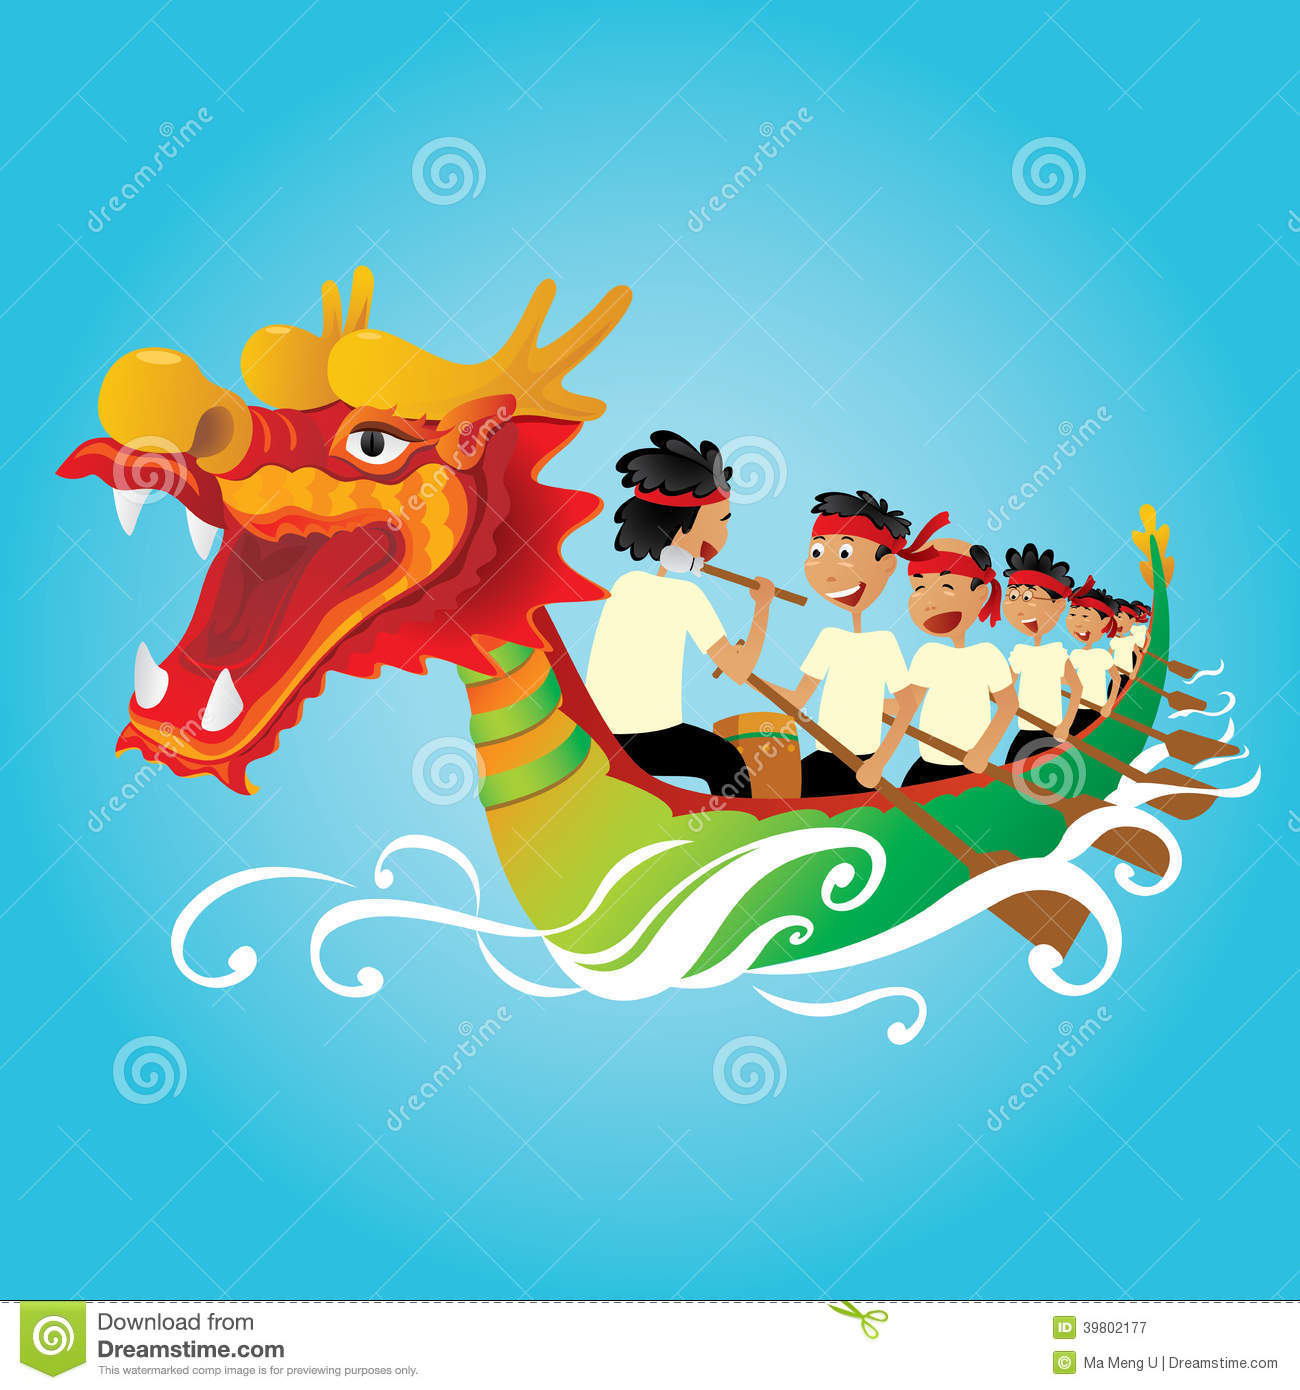 Festival clipart chinese dragon Clipart Photography illustration Dragon collection